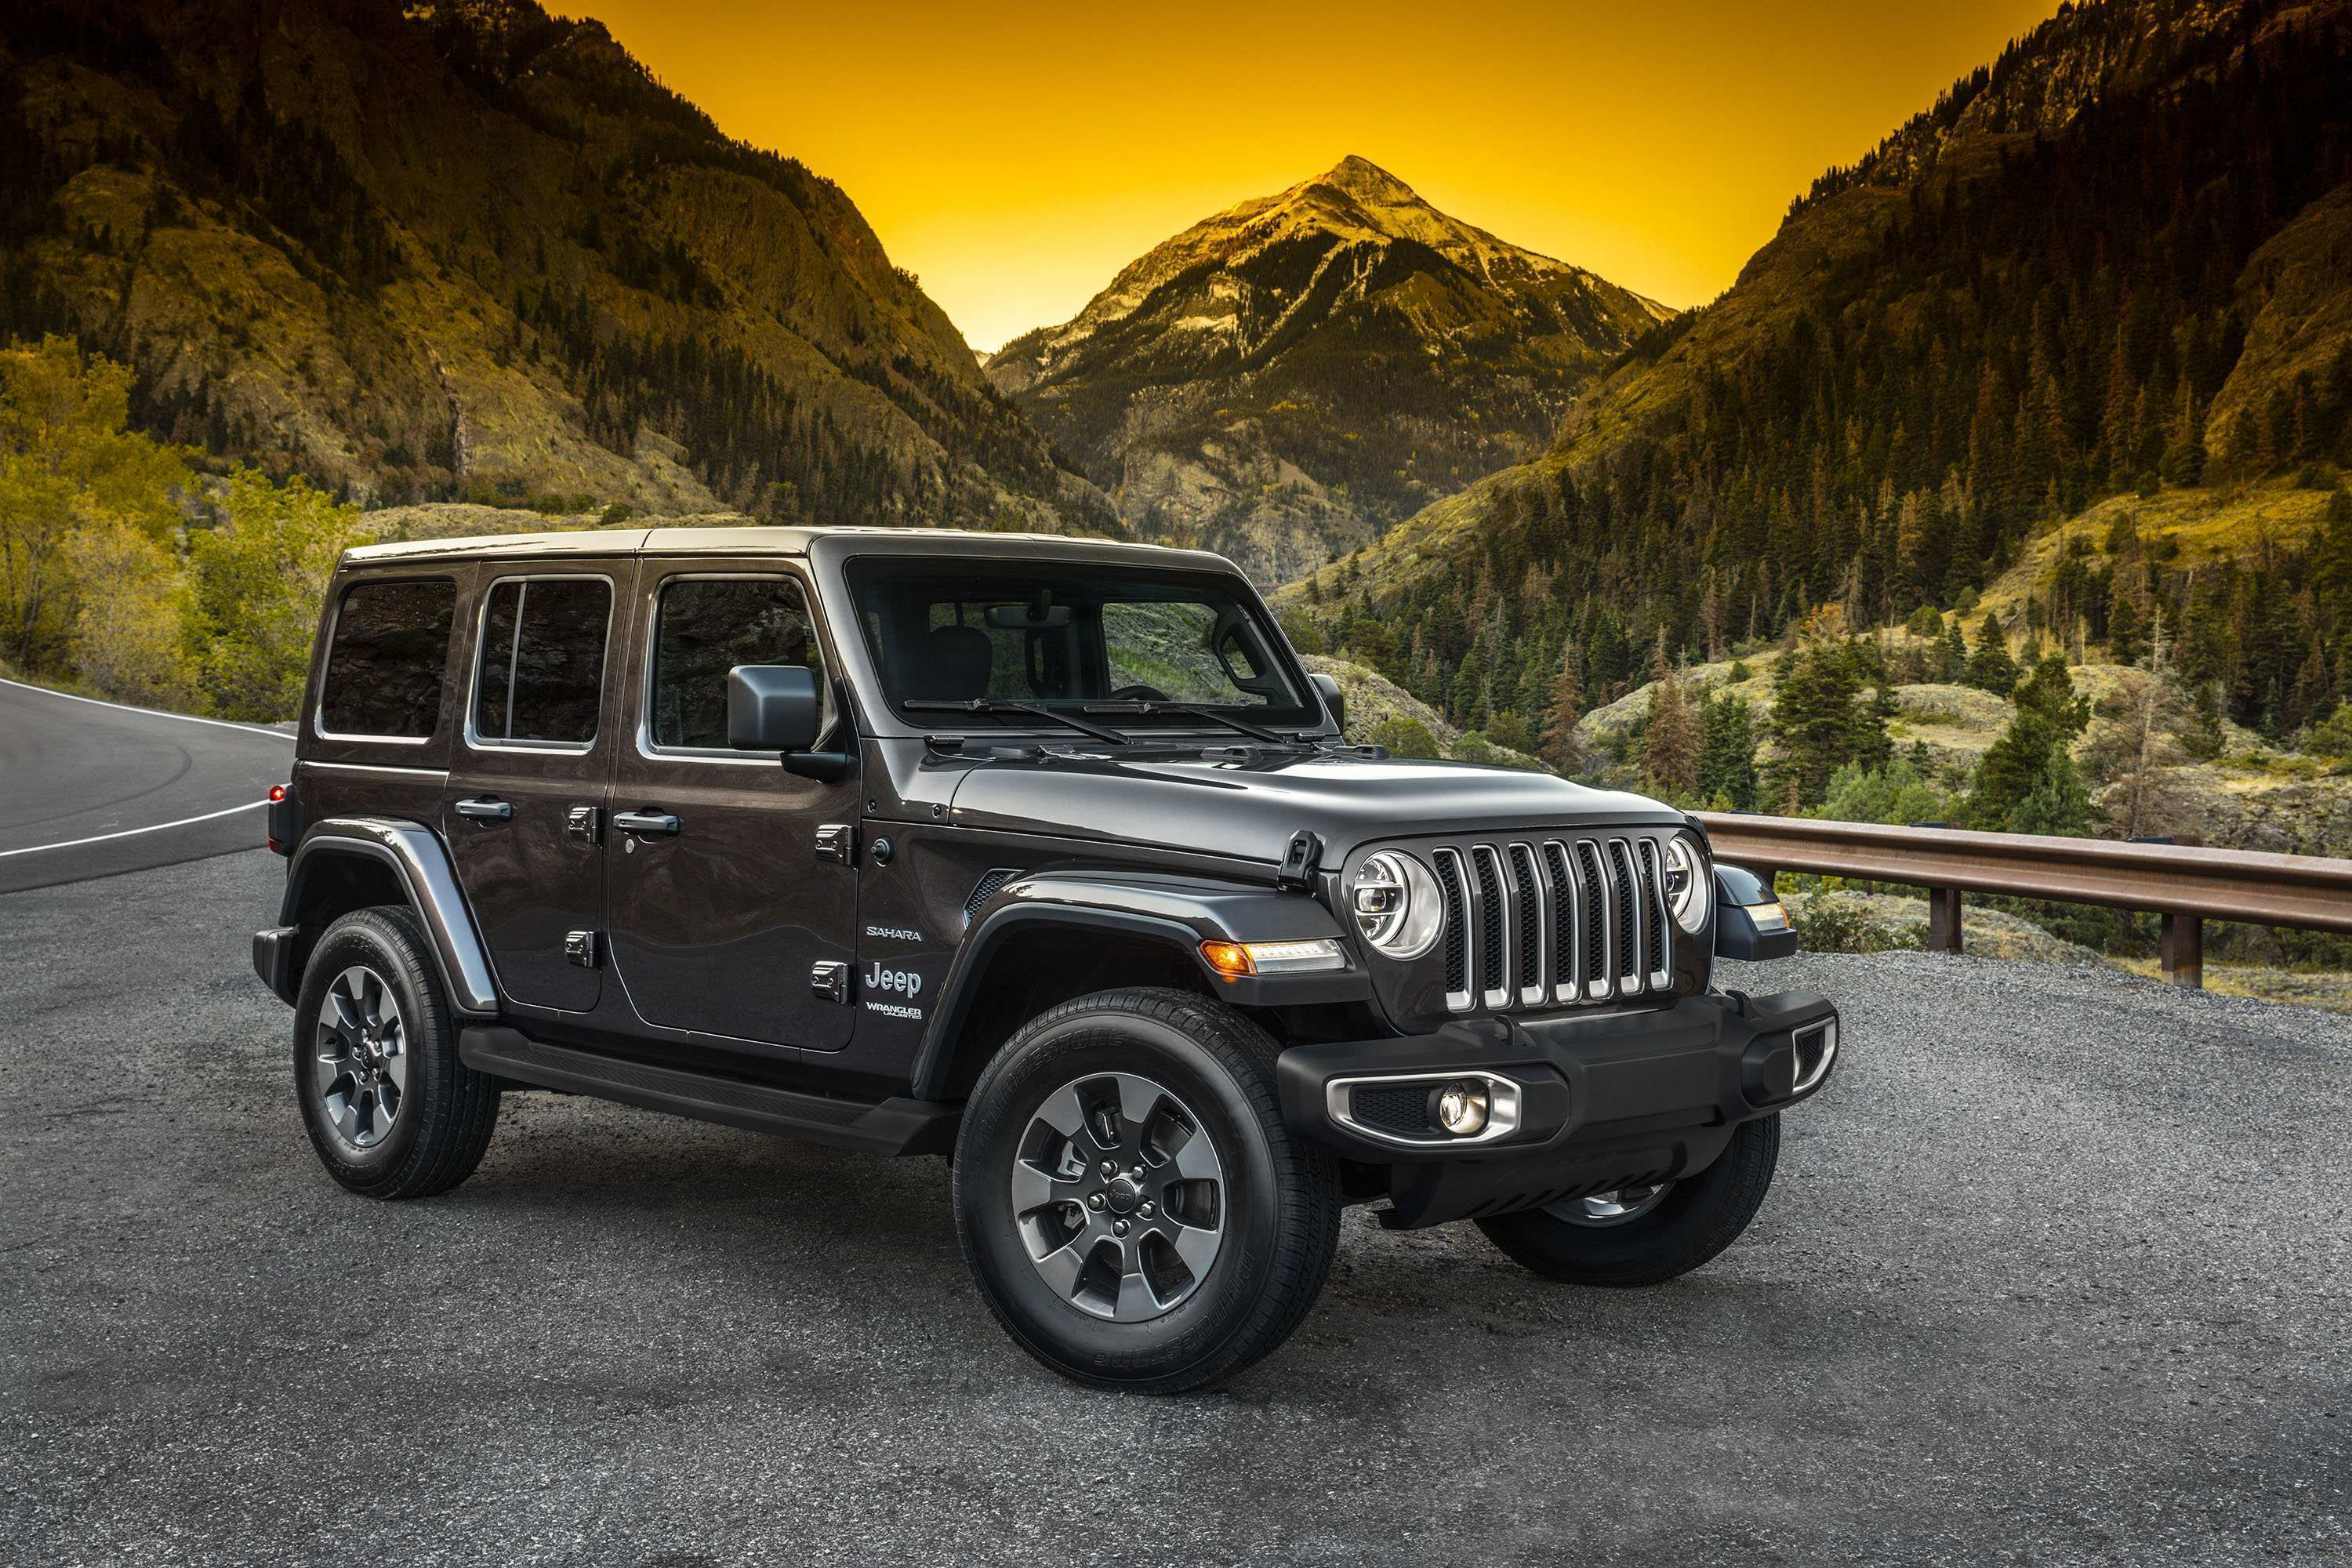 61 Best Review Jeep Wrangler 2020 Pricing for Jeep Wrangler 2020